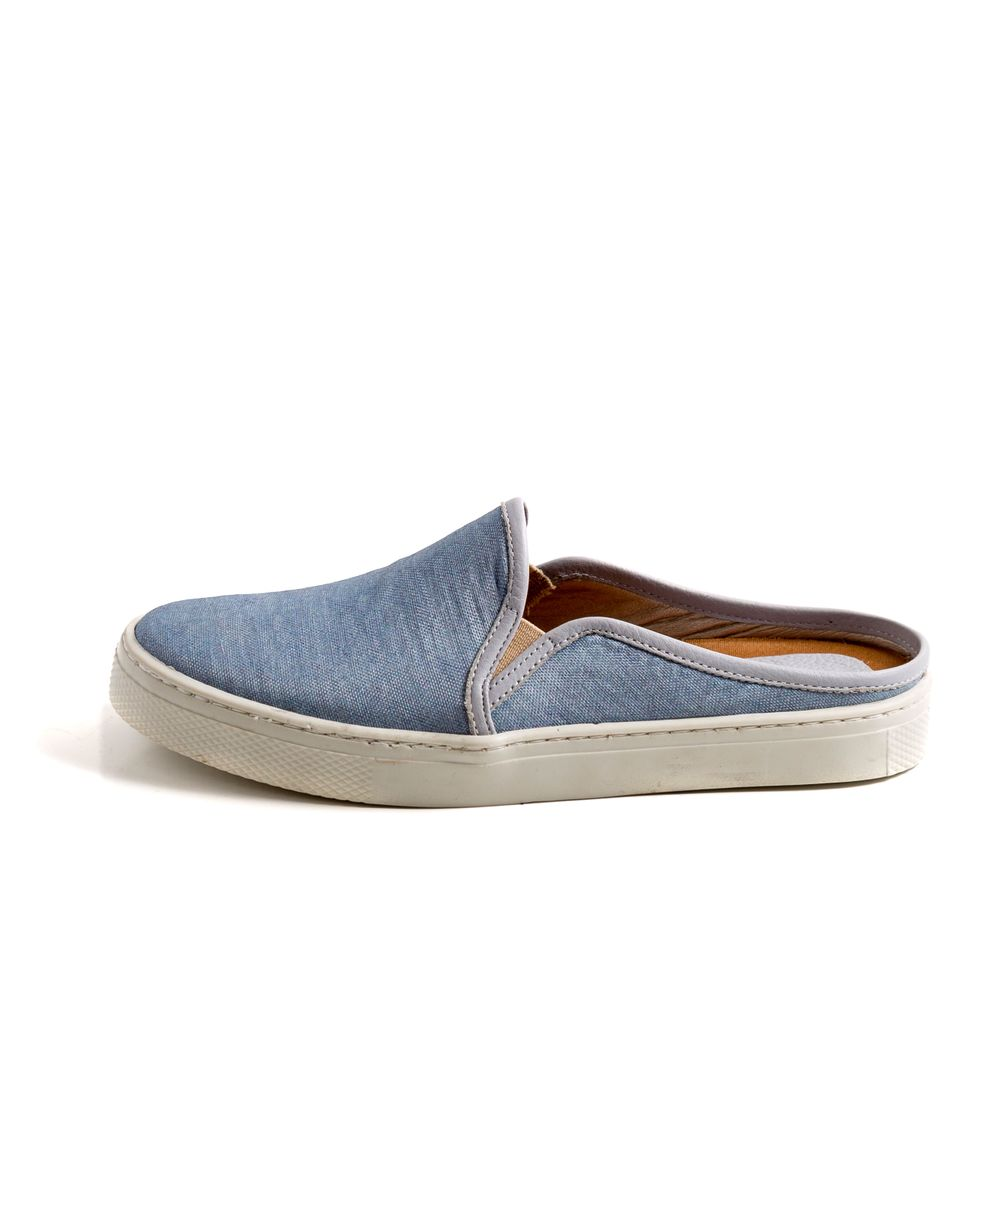 MY-SHOES-SLIP-ON-ABERTO-JEANS-70460007